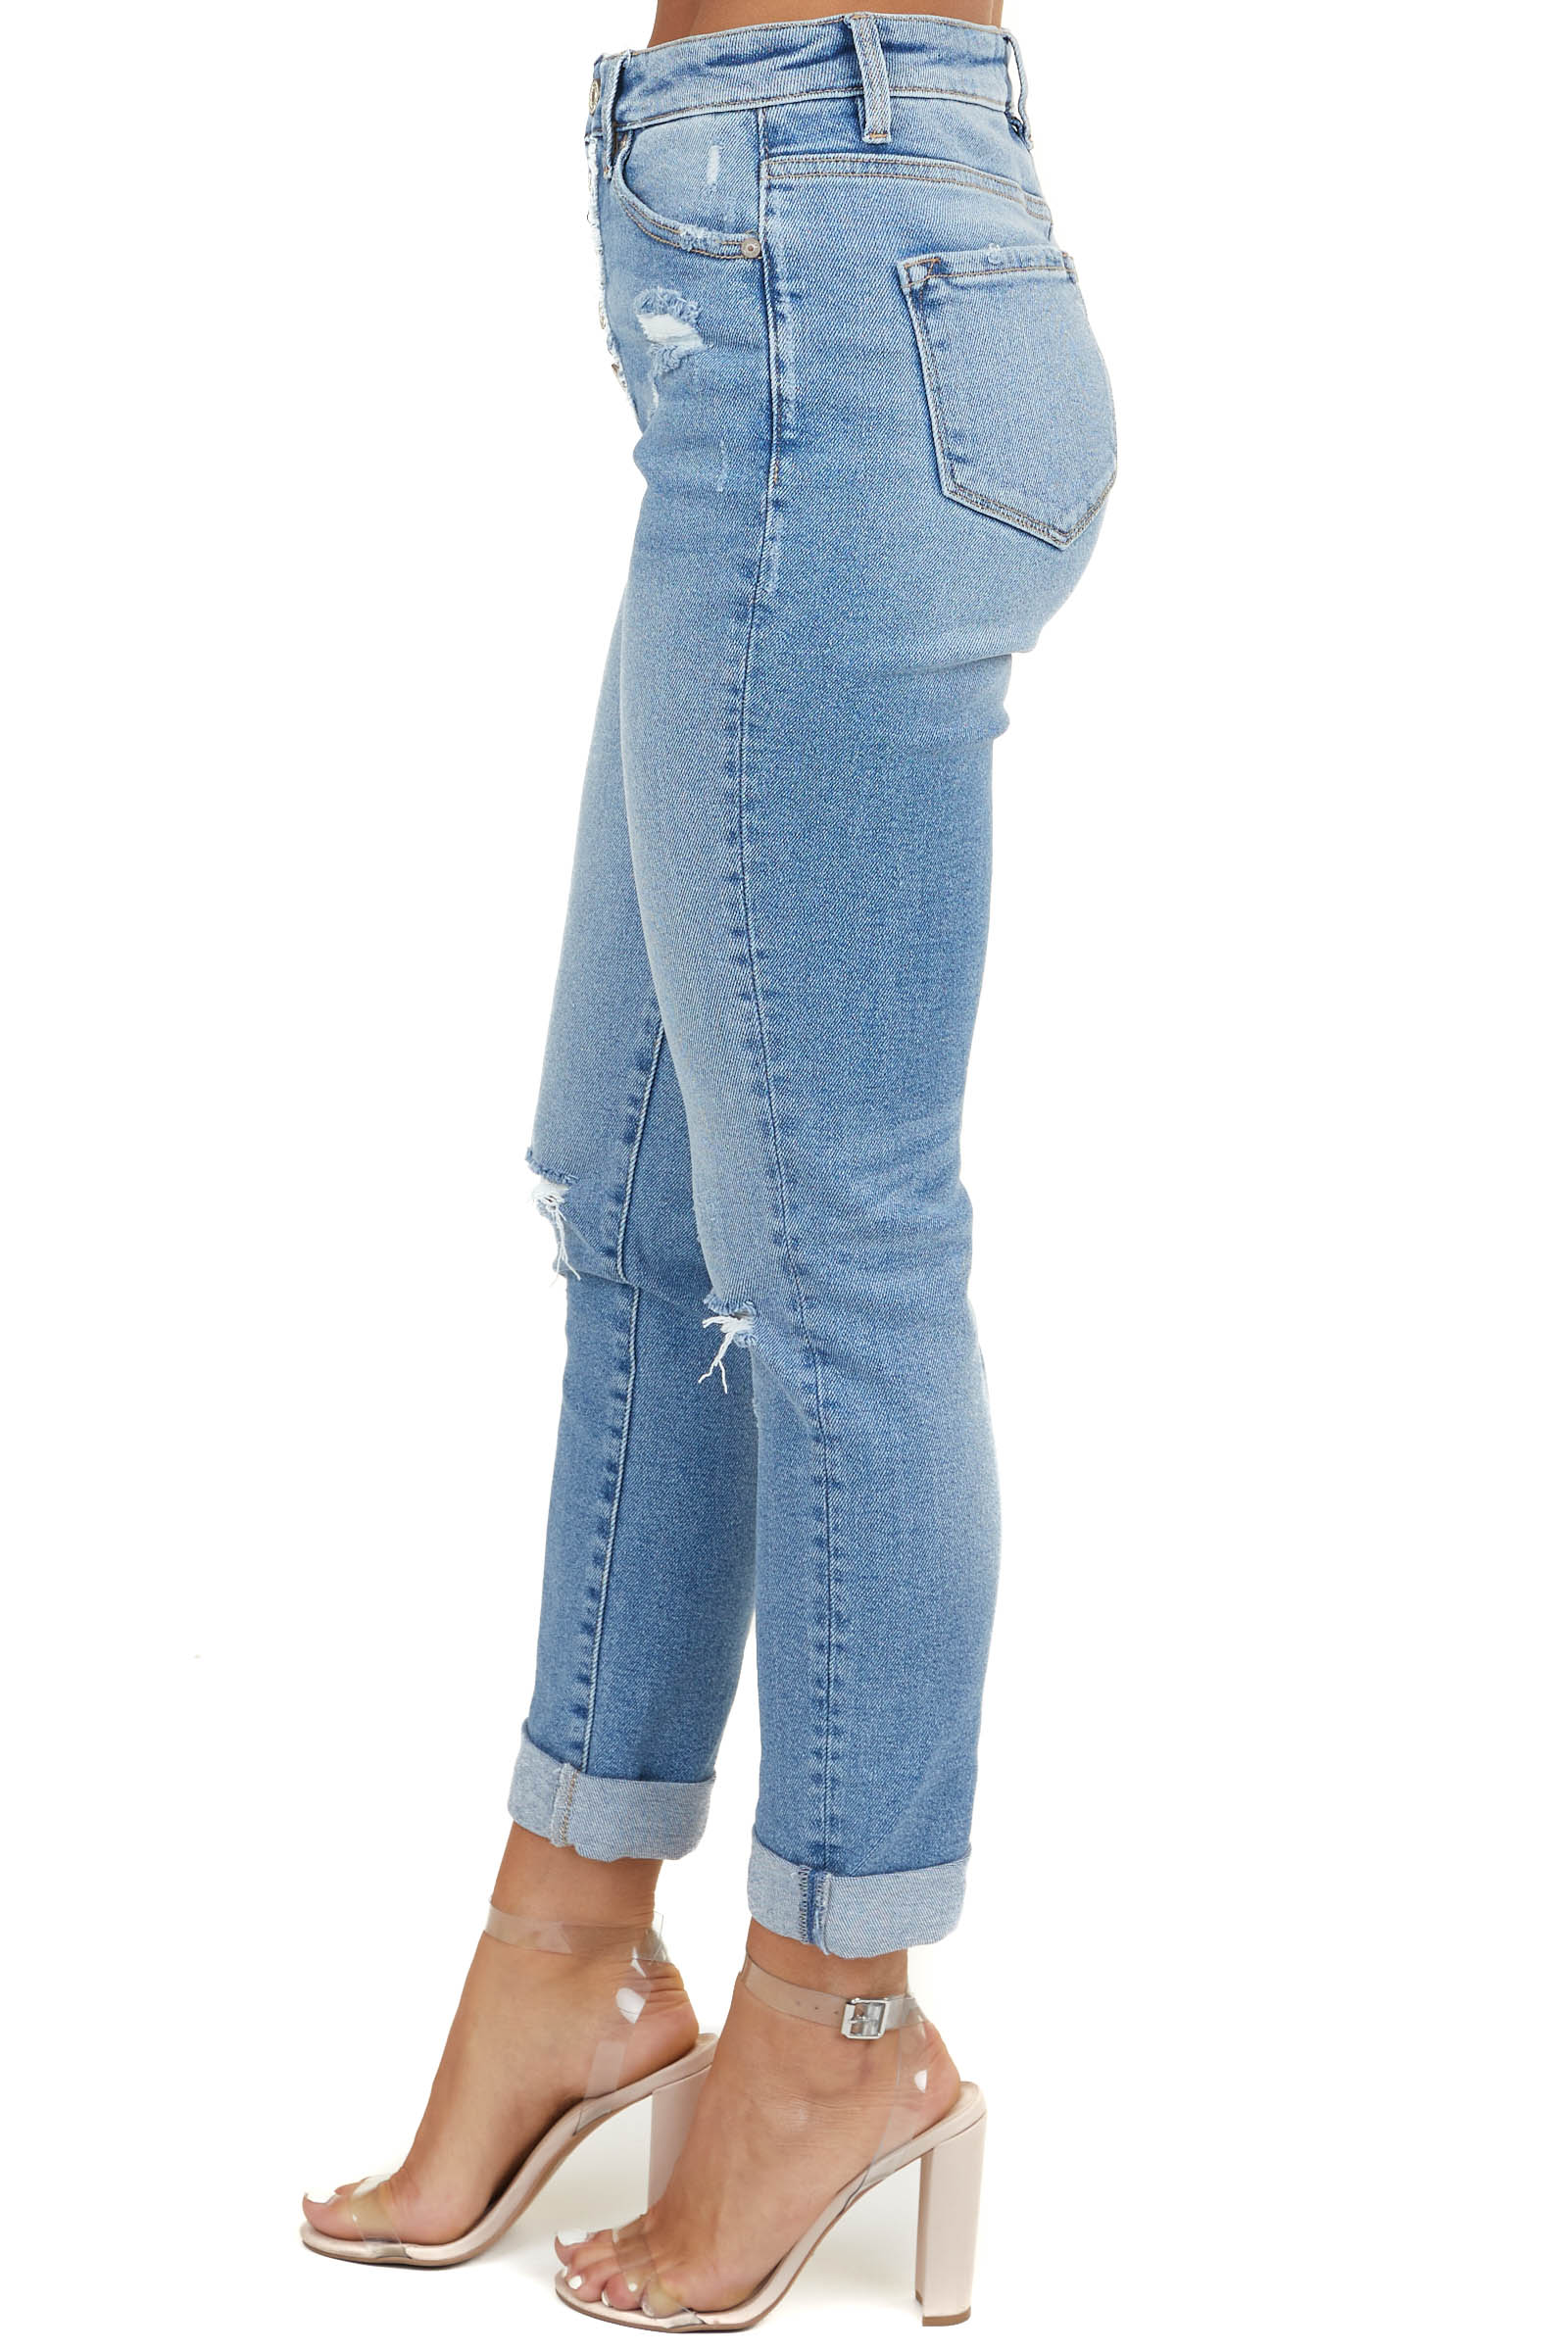 Light Wash Denim Relaxed Fit Jeans with Distressed Details